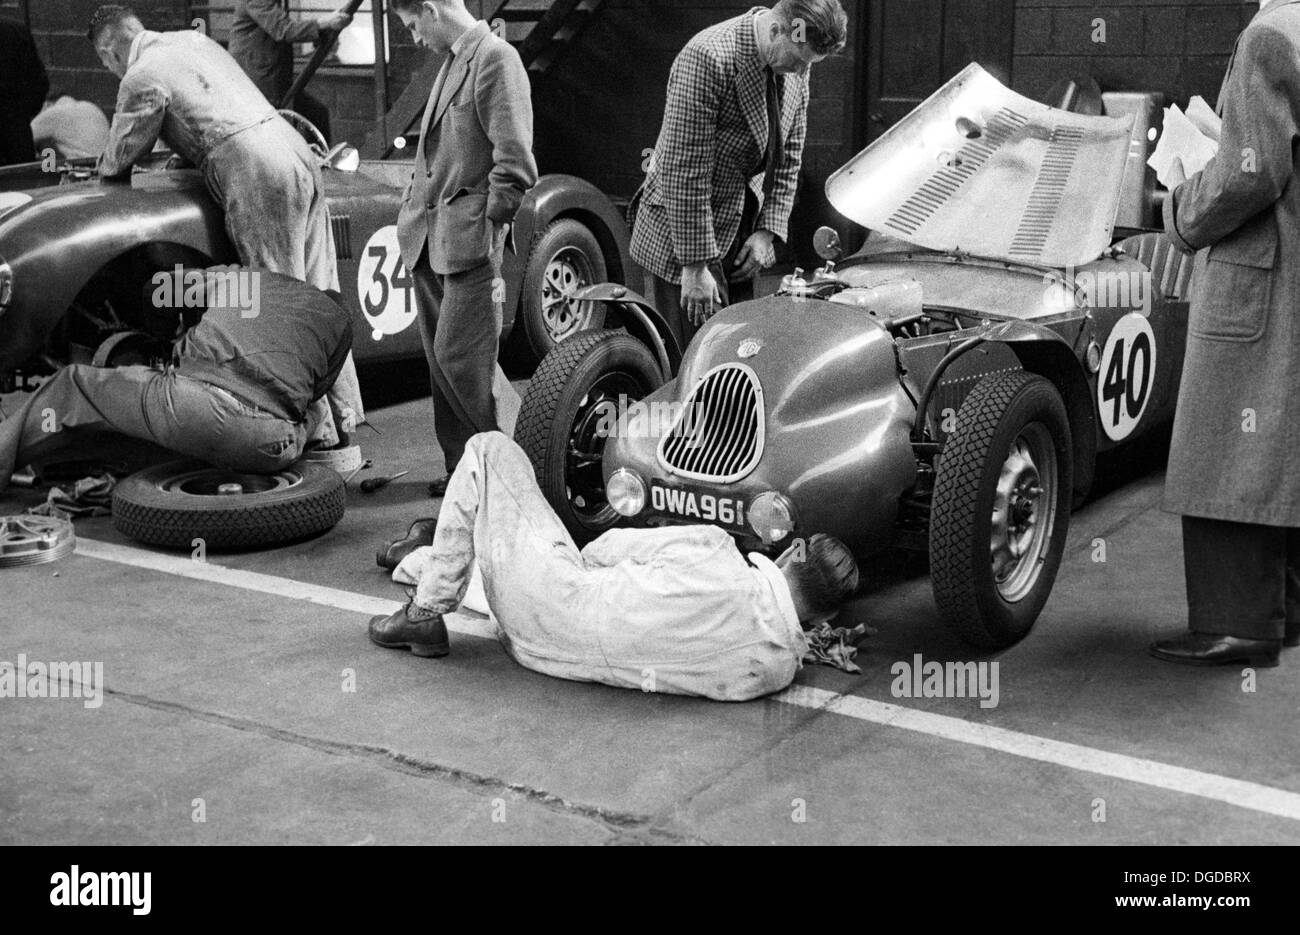 Preparation of the Jackson/Lane Lester T51 MG in a Belfast garage for the Dundrod TT, Northern Ireland,1953. - Stock Image